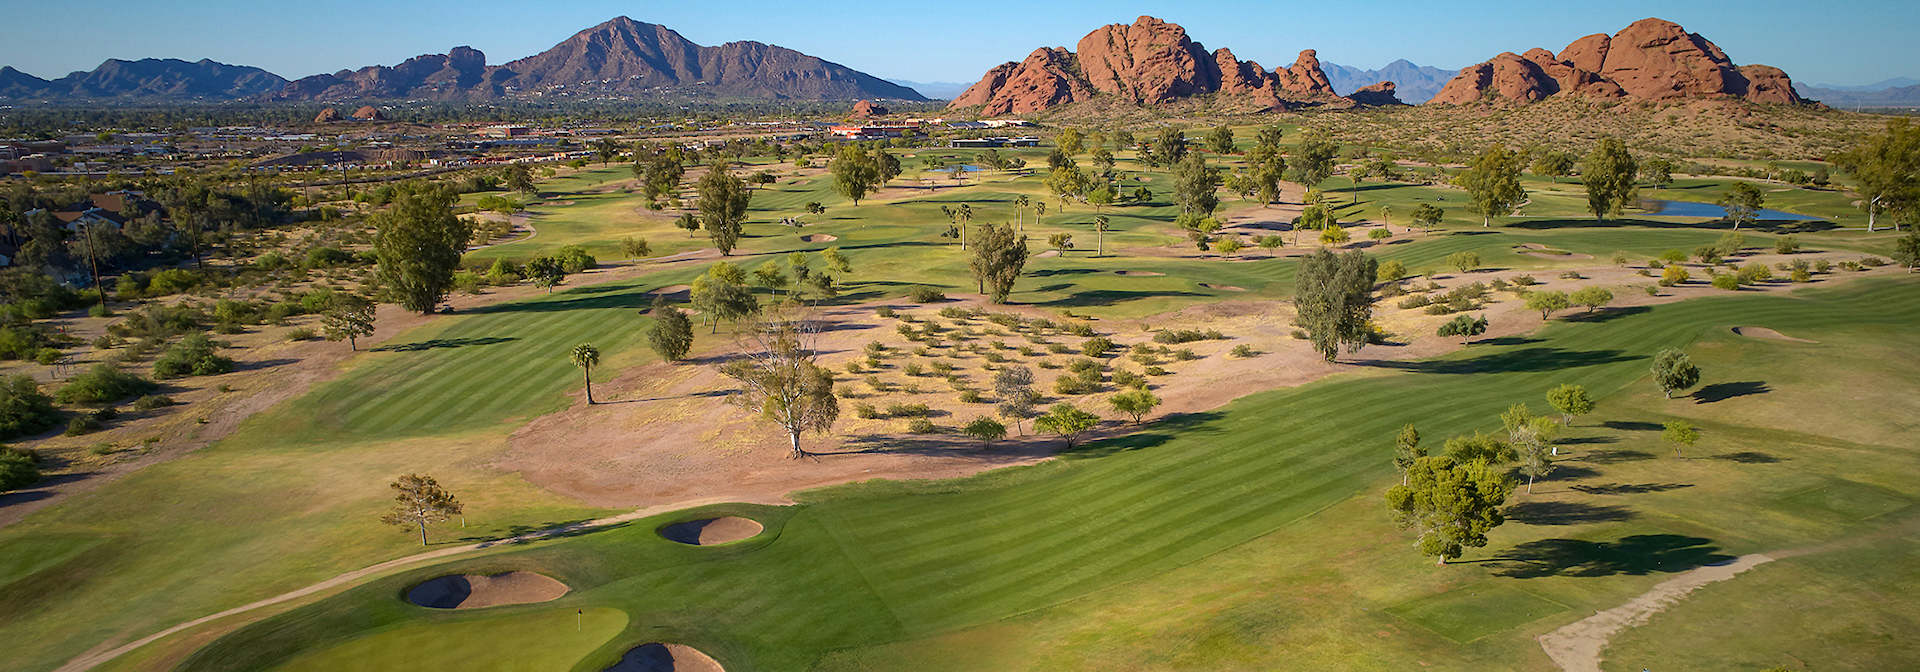 Papago Golf Club Named No. 15 Municipal Course in Country